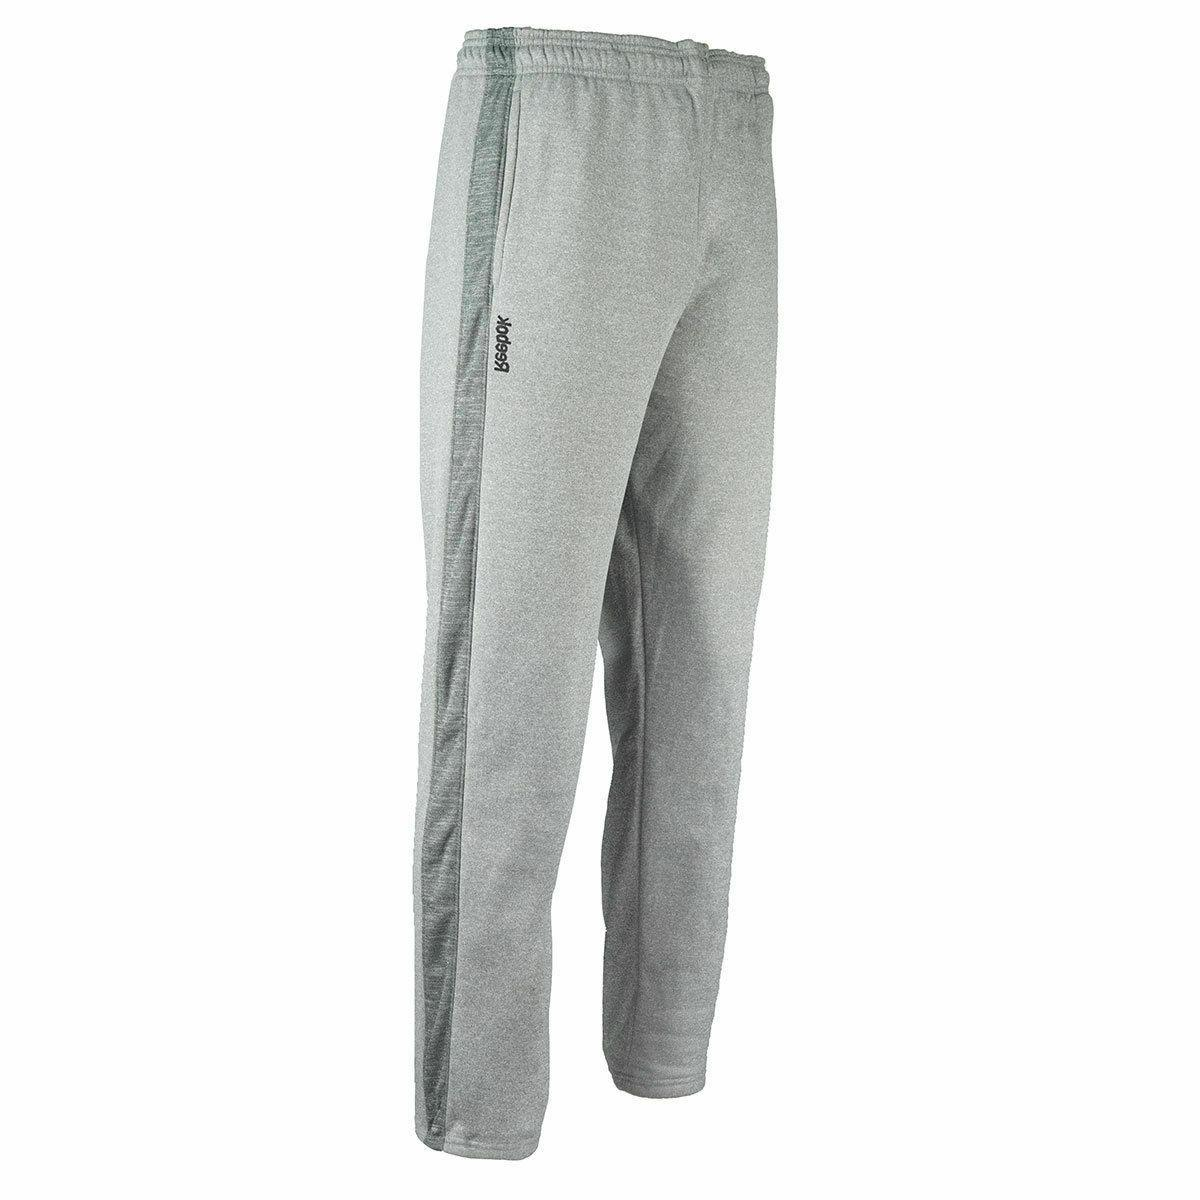 Reebok Joggers Sweatpants Athletic Gym Muscle Active